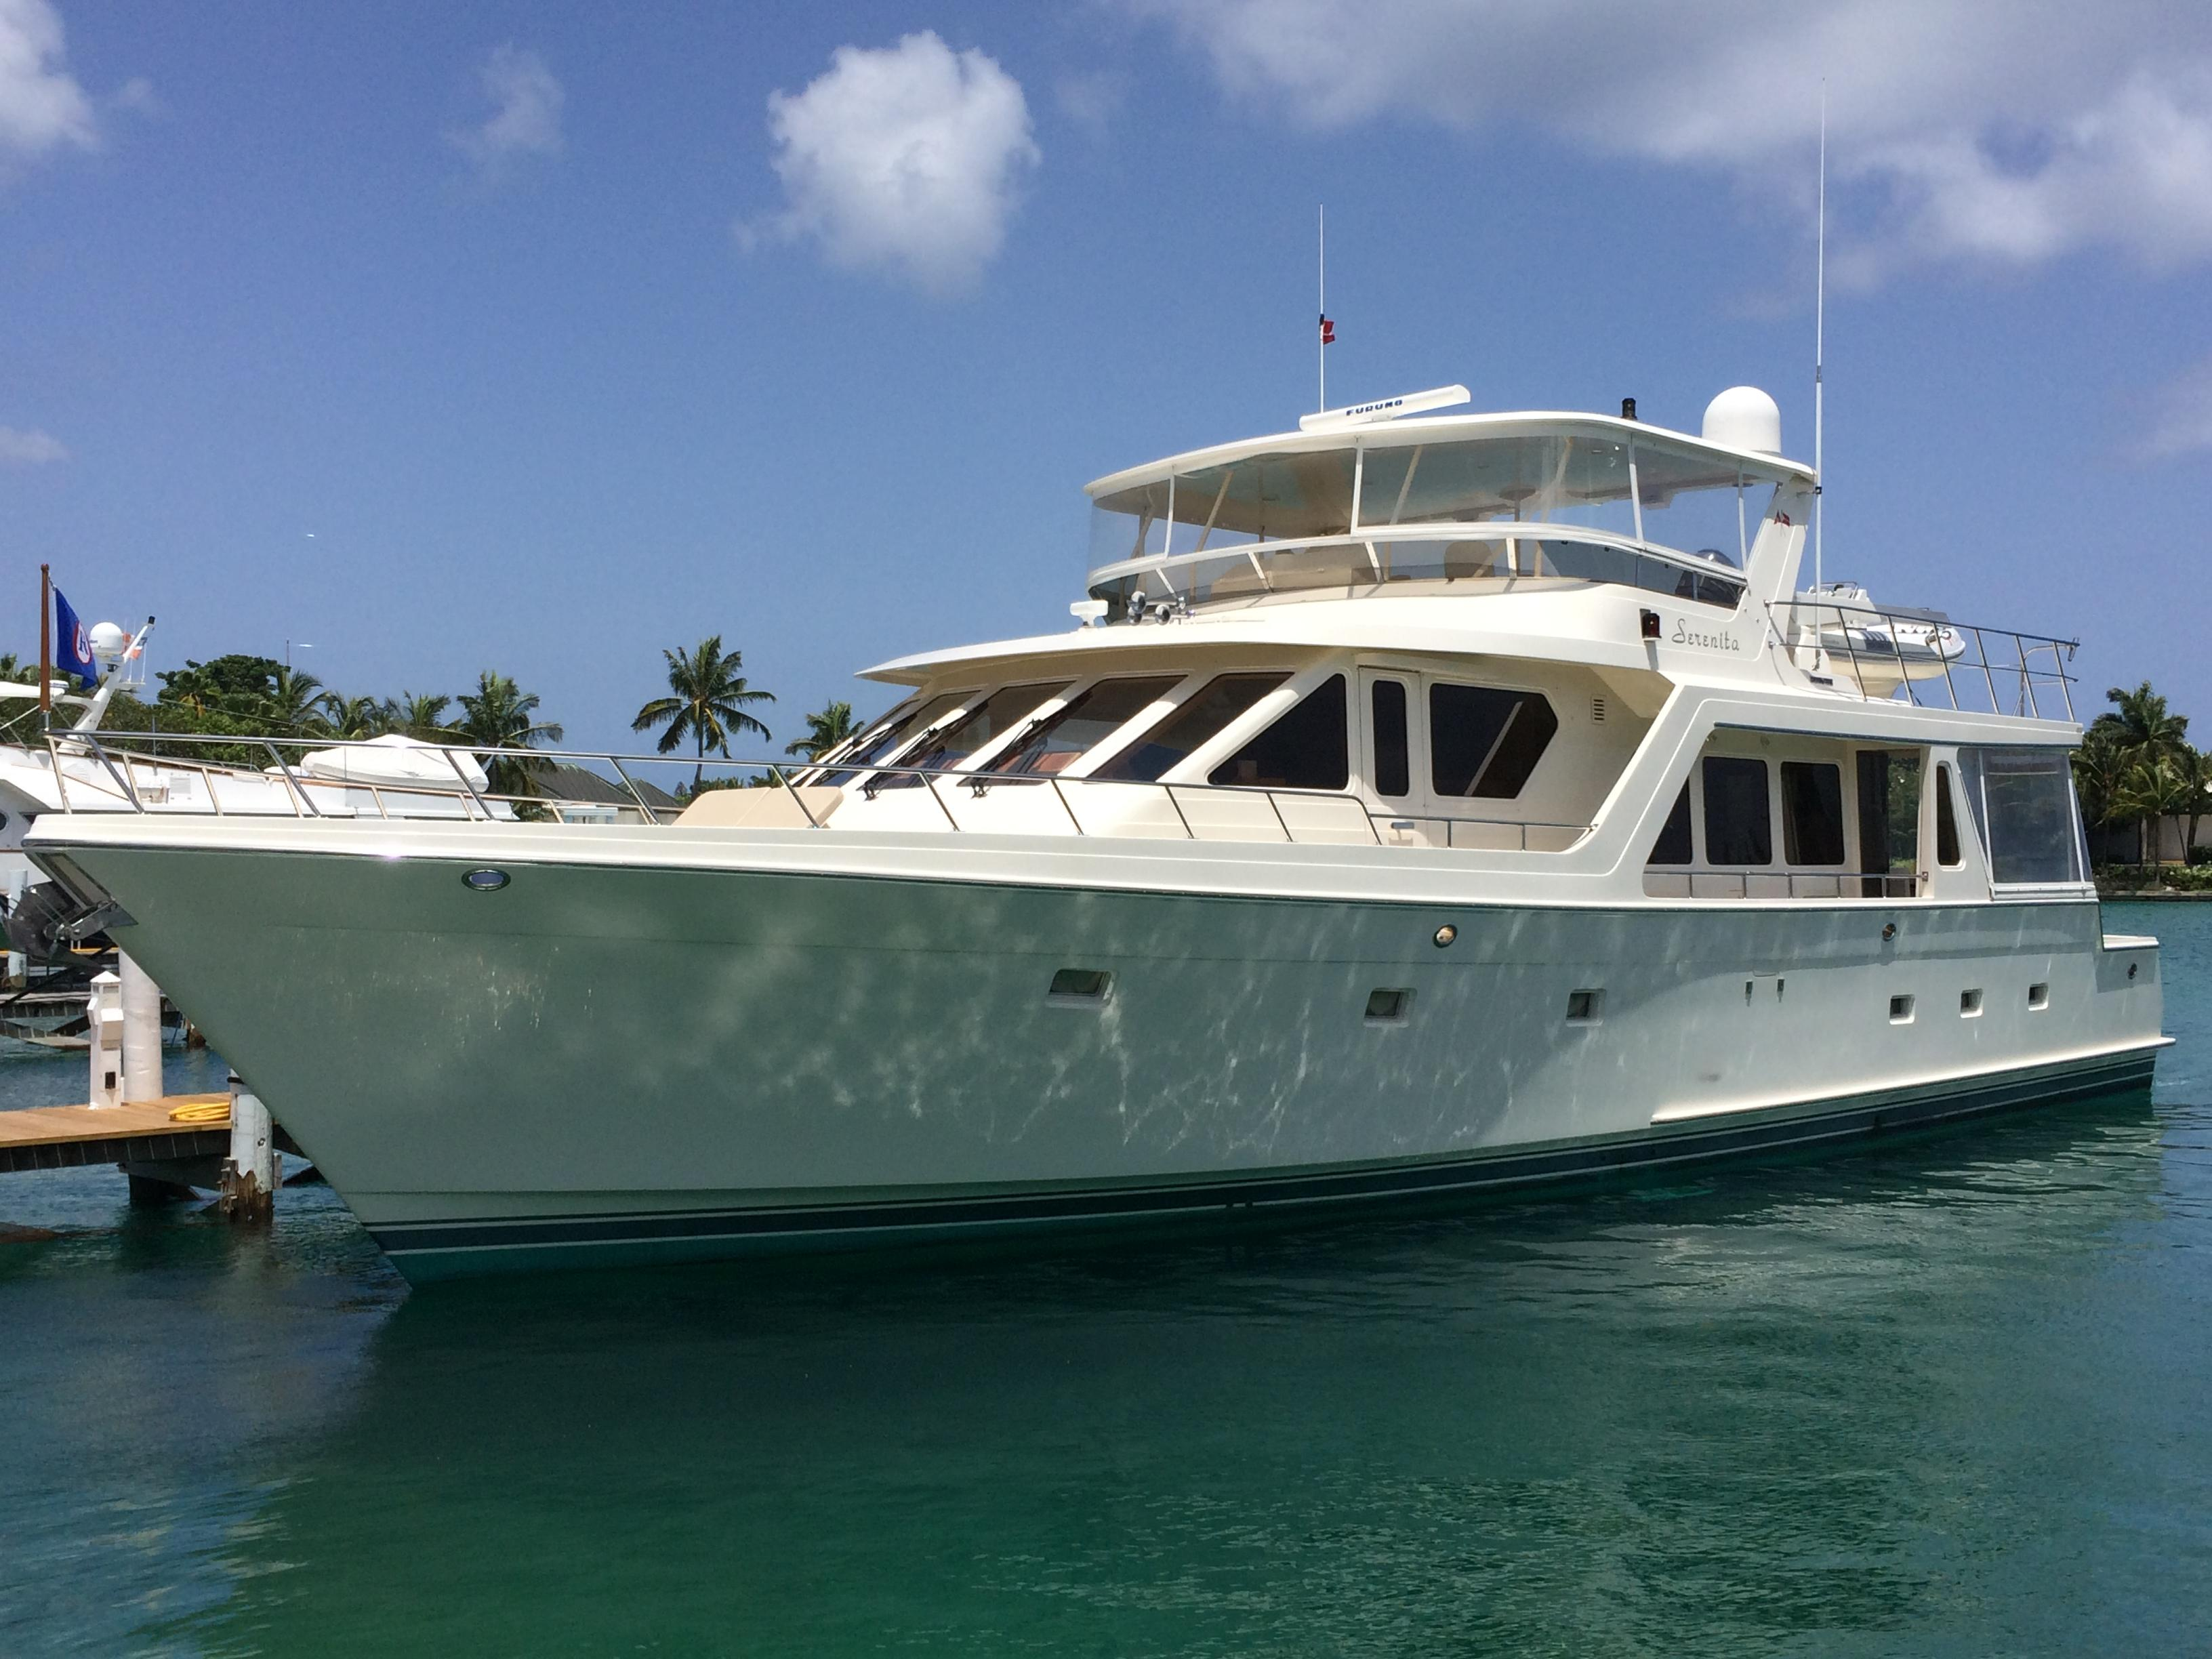 Serenita Offshore 2006 72 Motor Yacht 72 Yacht For Sale In Us